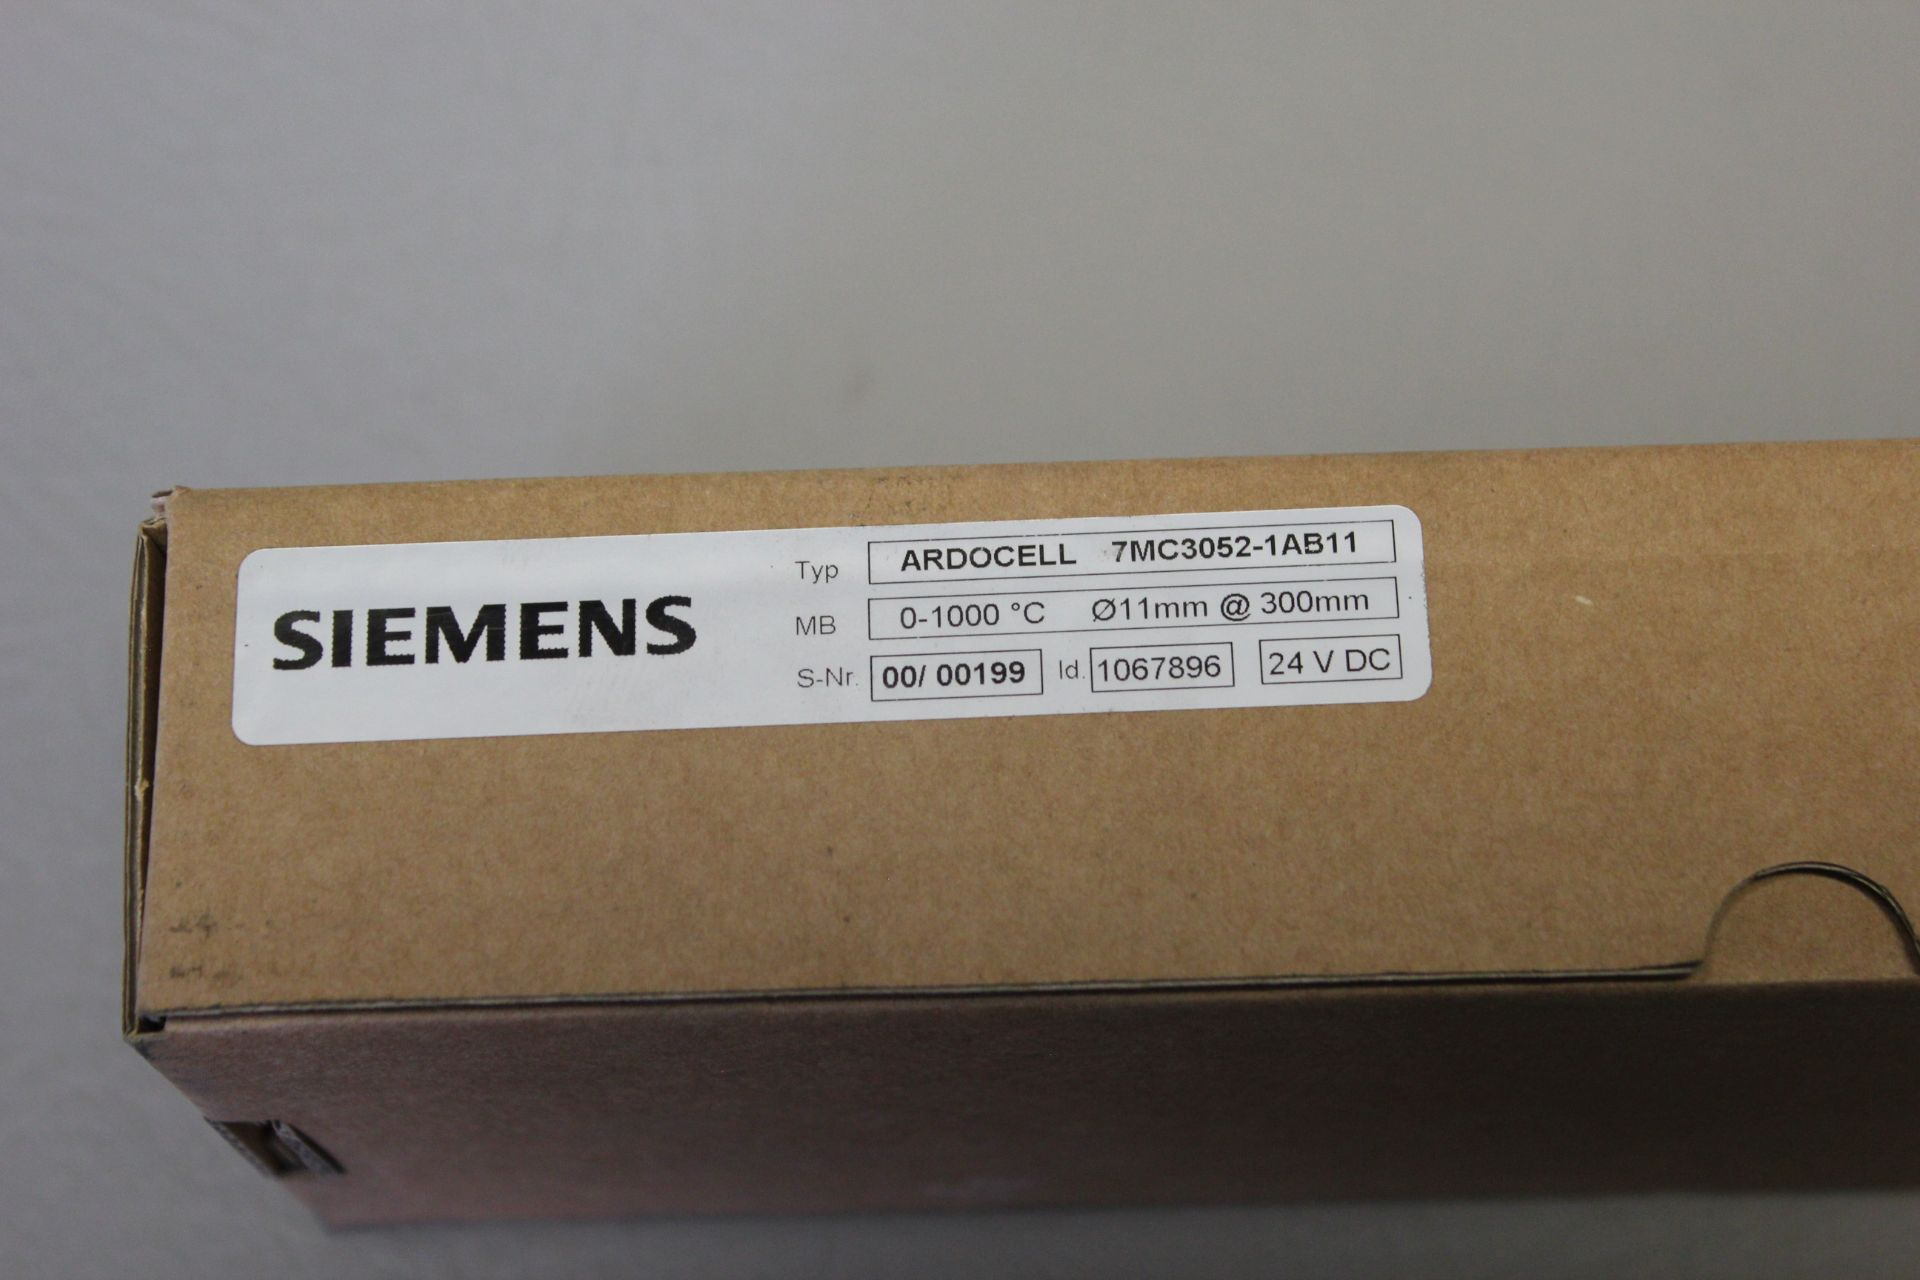 NEW SIEMENS ARDOCELL SPECTRAL PYROMETER - Image 2 of 4